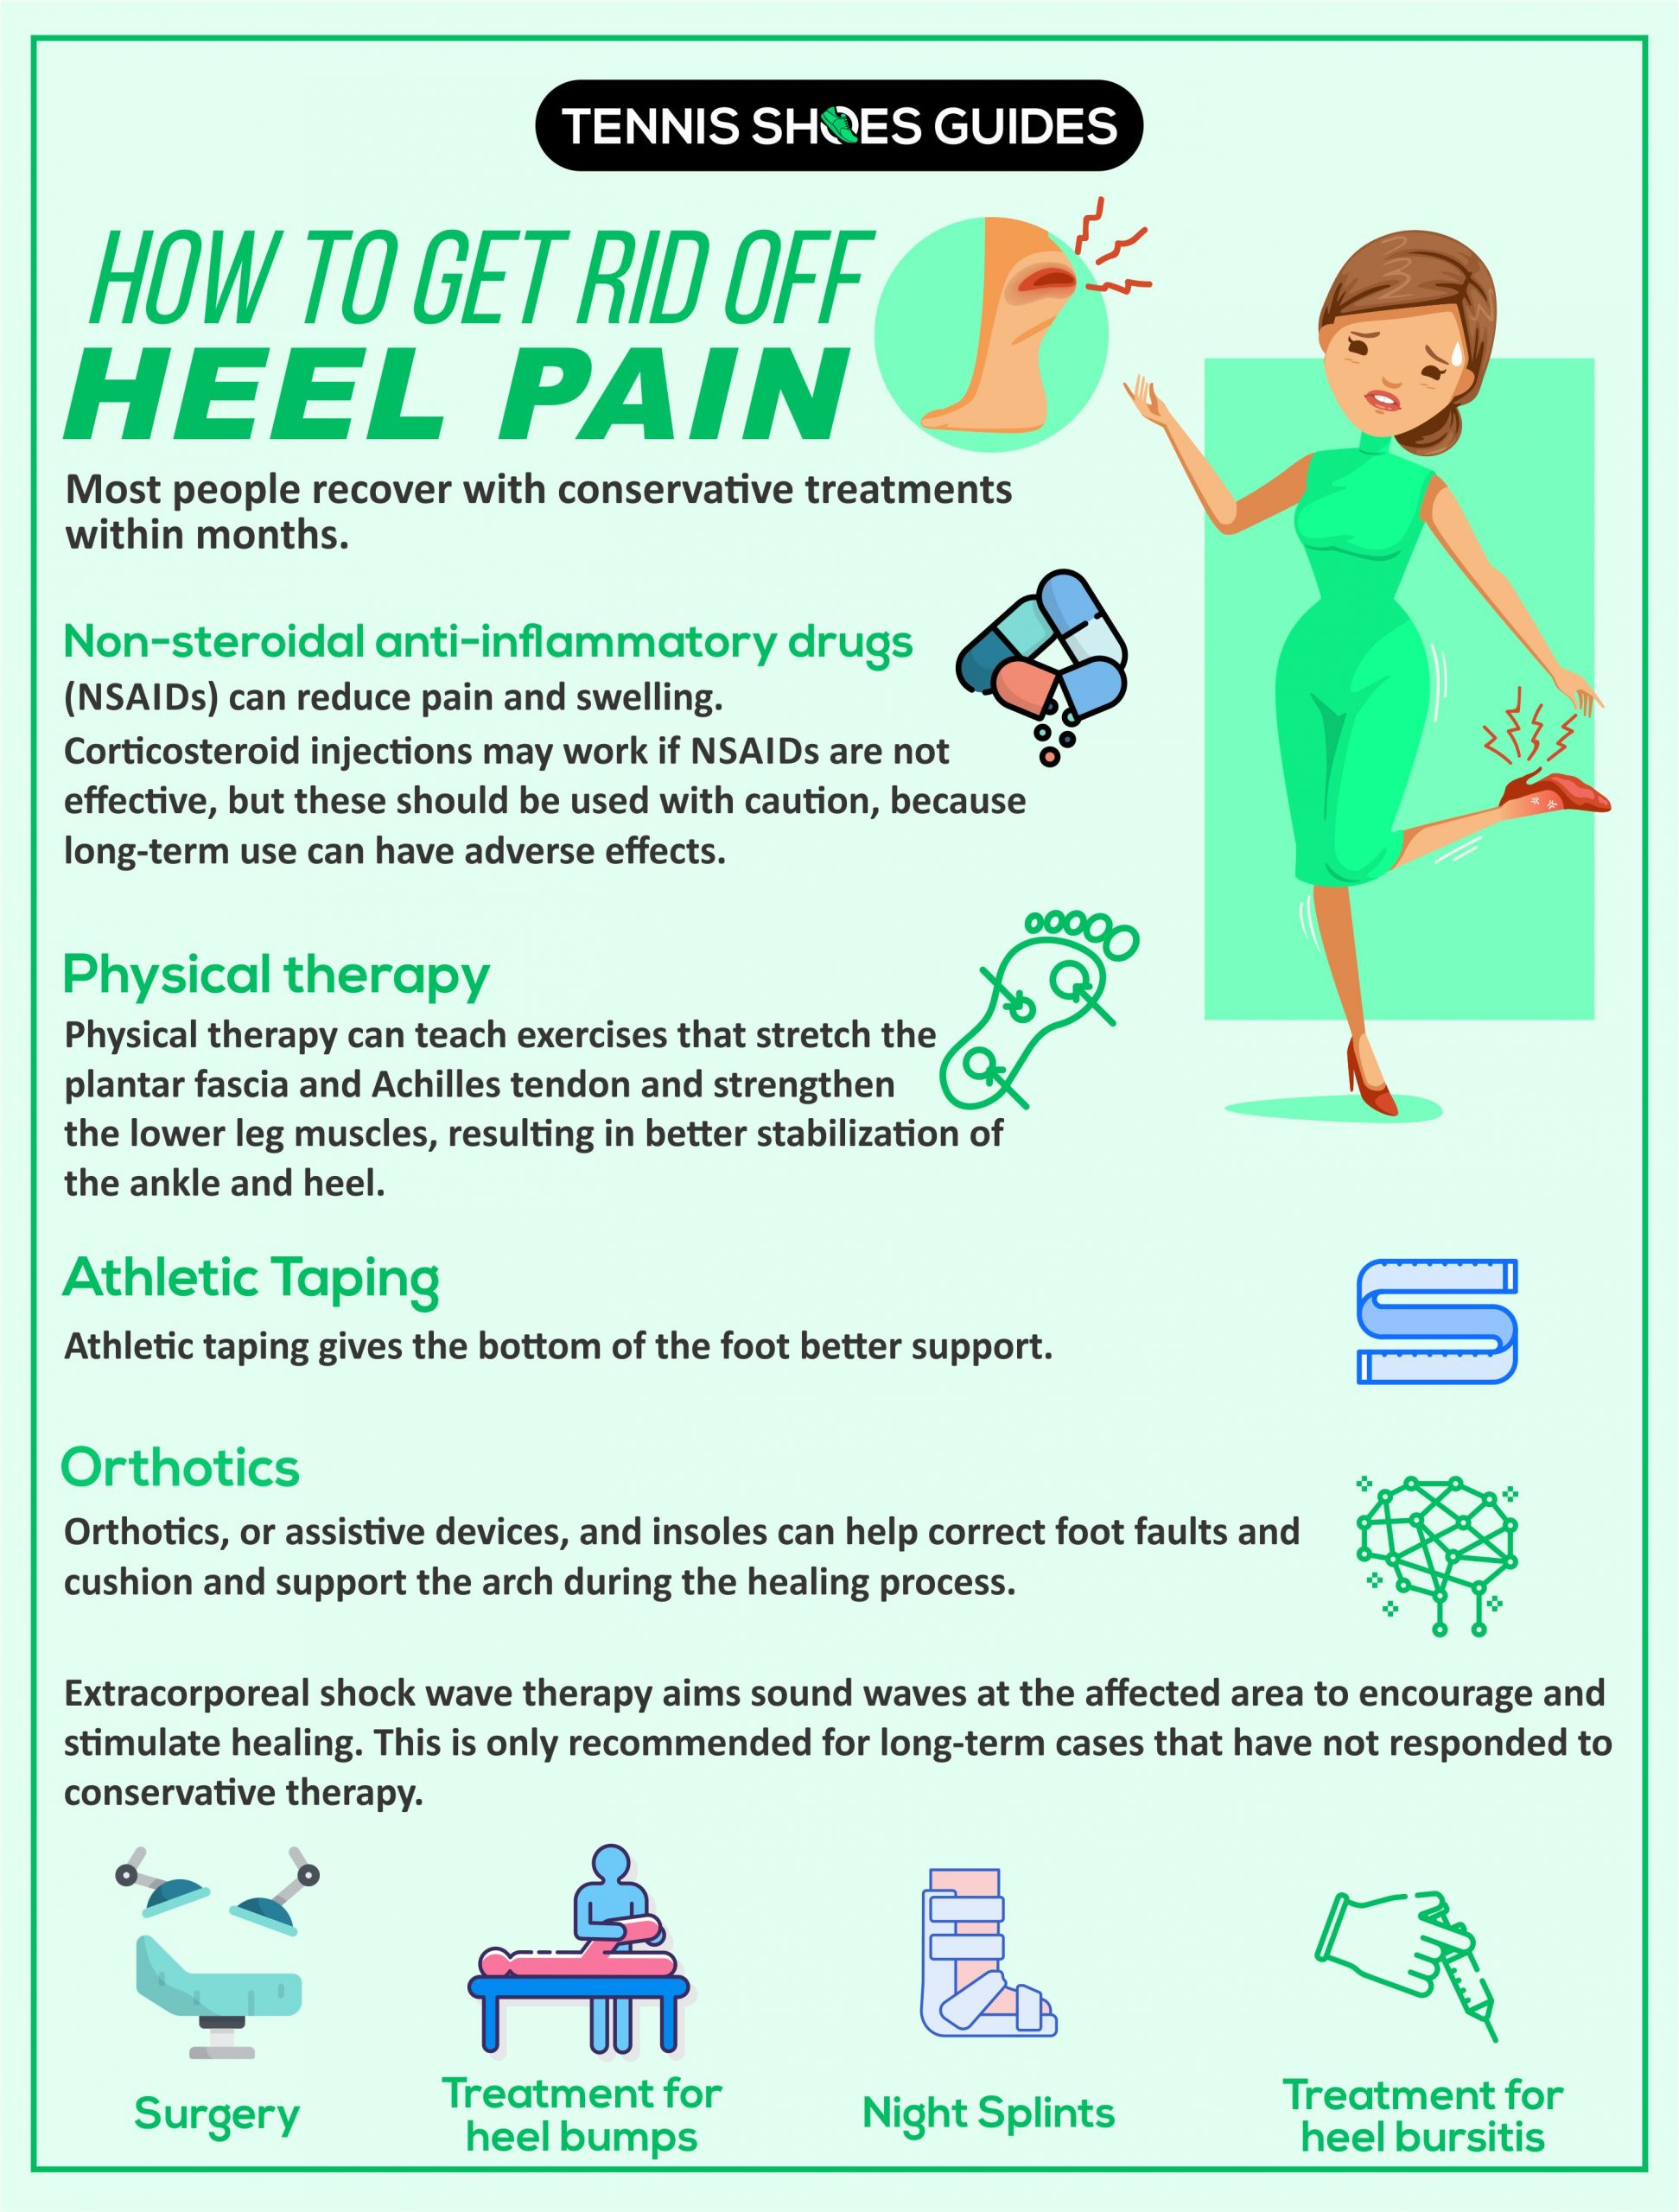 how to get rid of heel pain infographic details